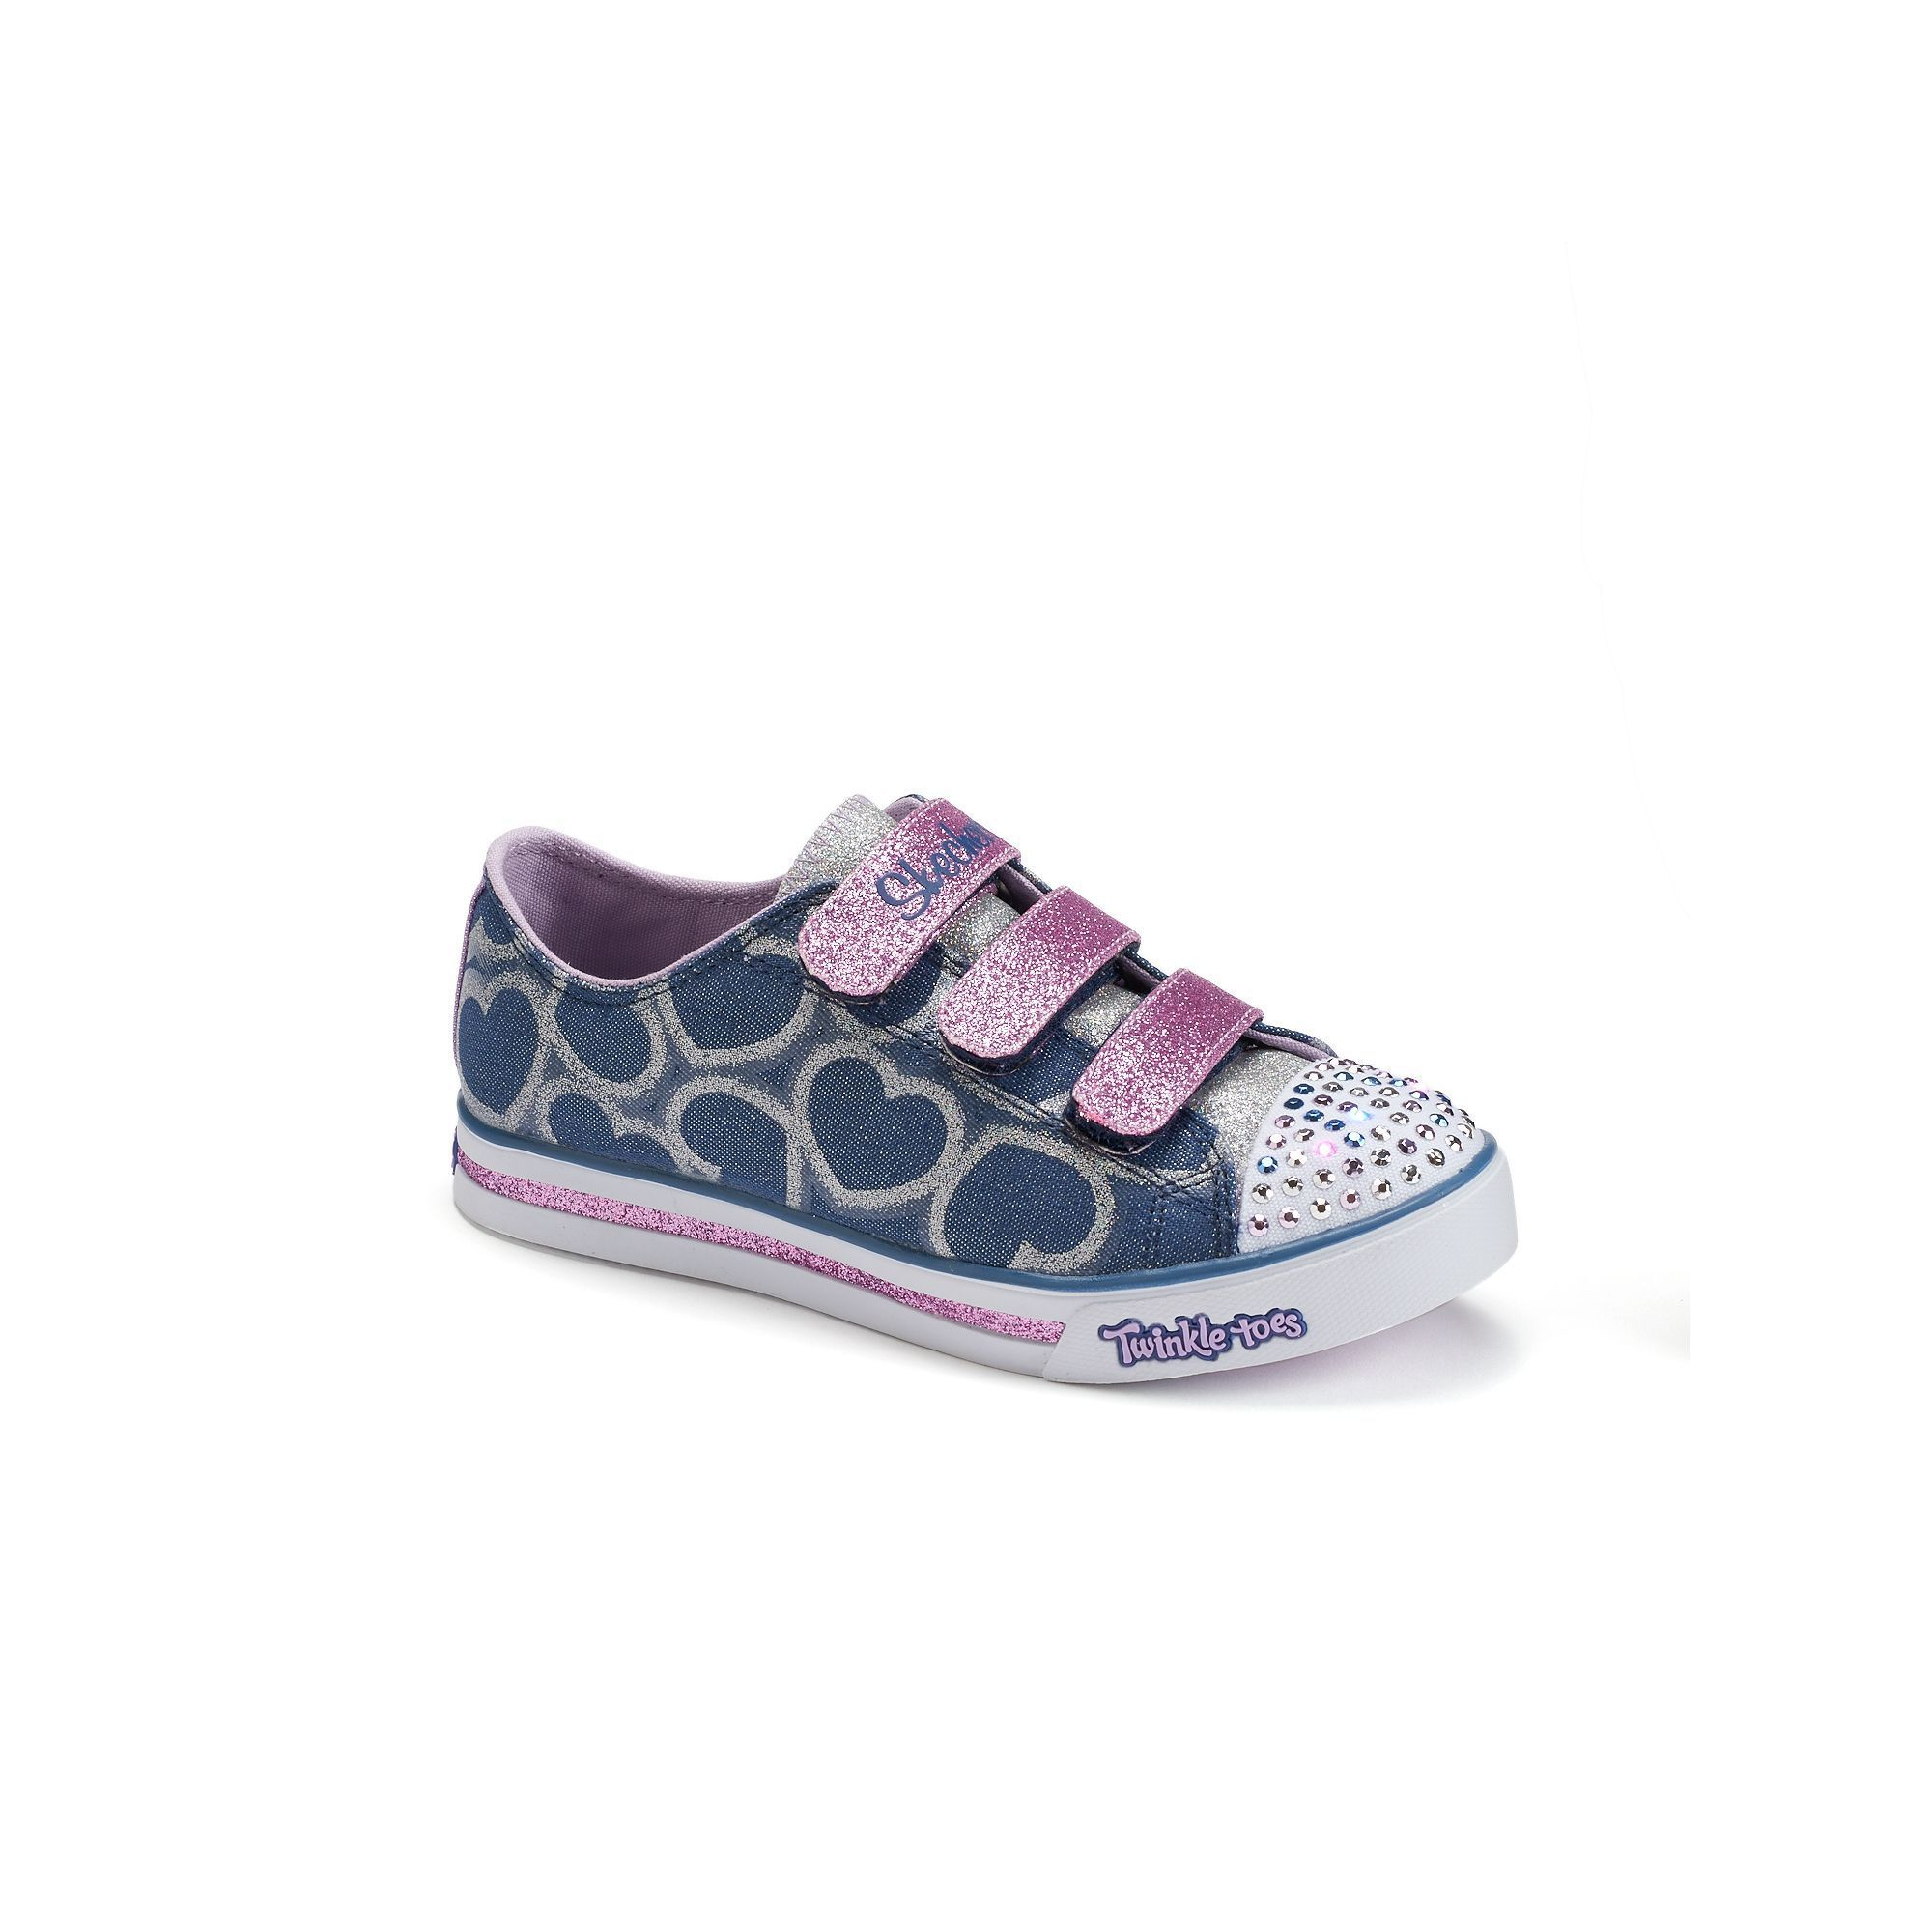 Skechers Twinkle Toes Sparkle Glitz Hearts Girls' Light-Up Shoes, Girl's, Size: 2, Orange Oth